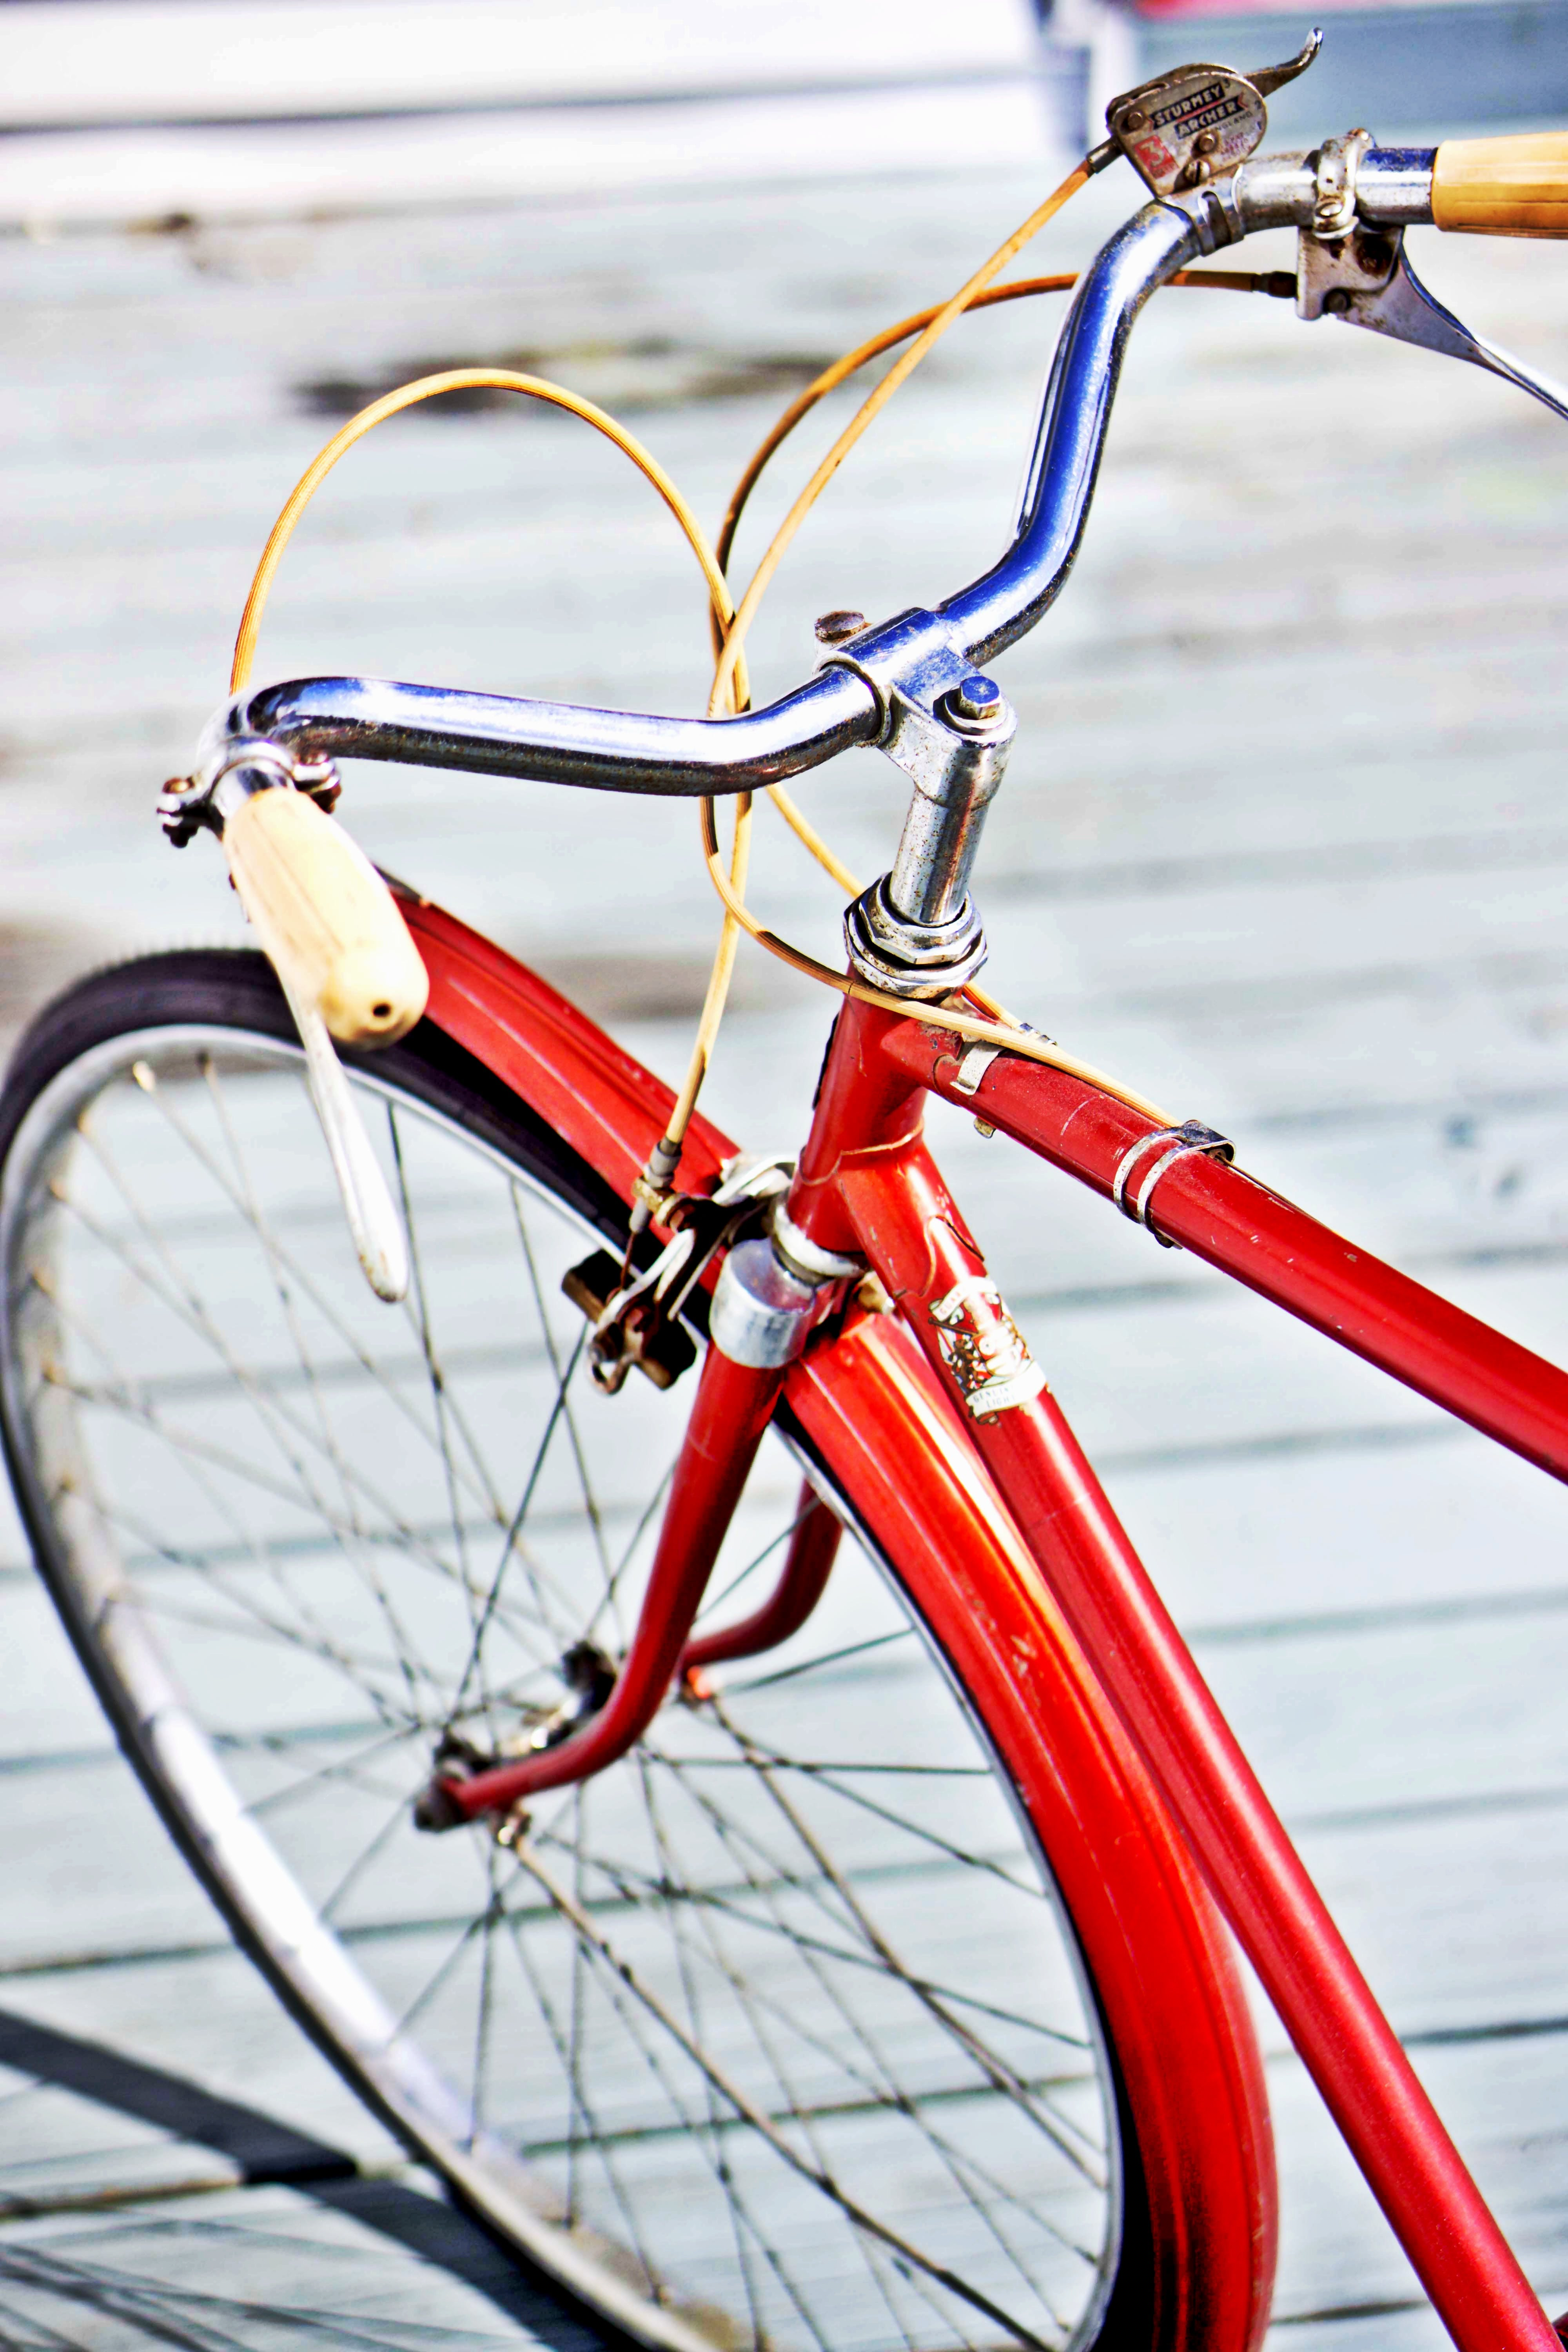 Selective Focus Photograph of Red Rigid Bicycle